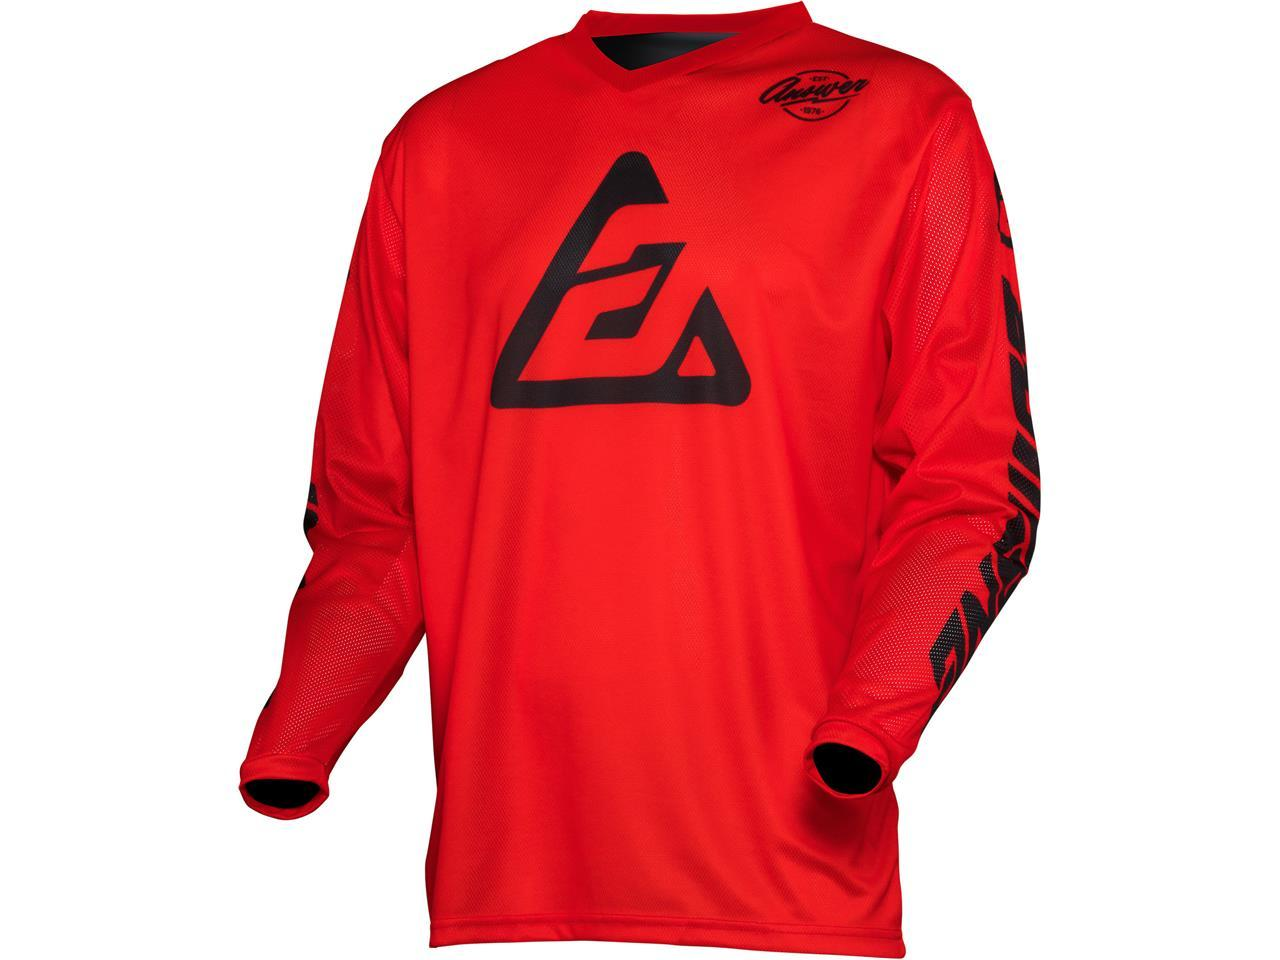 Maillot arkon rouge 1